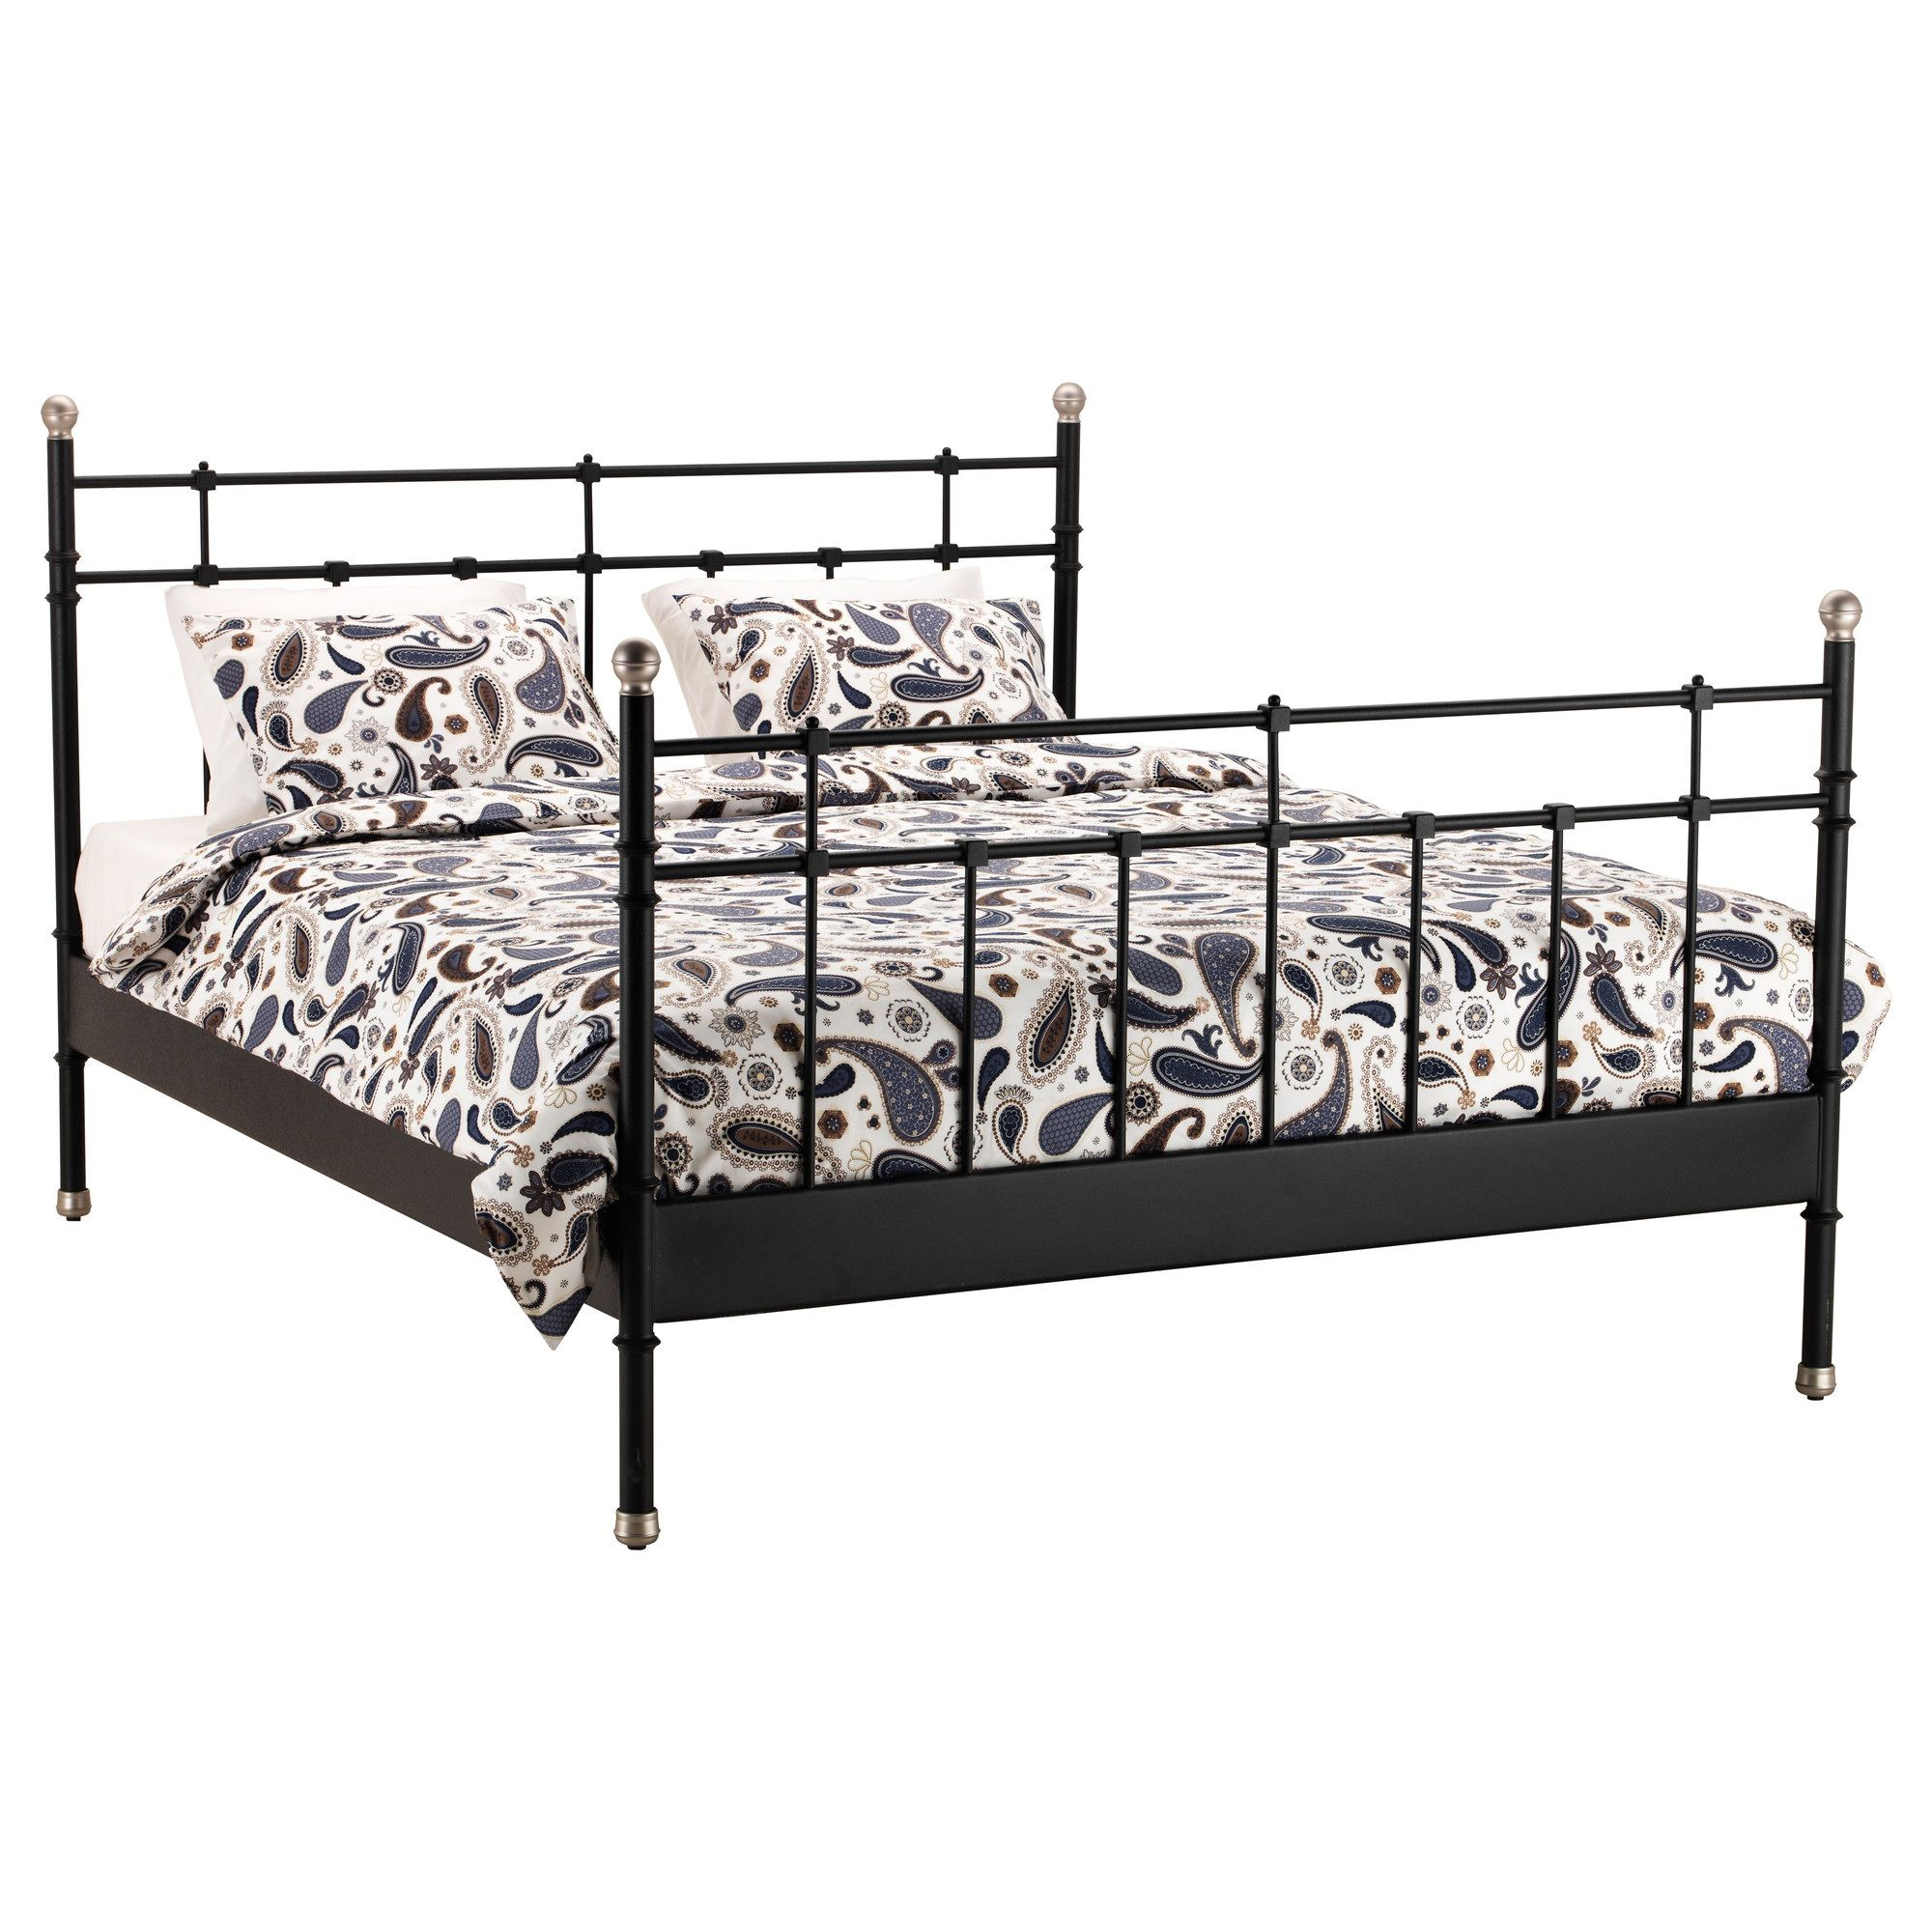 Surprising Ikea Metal Bed Frame